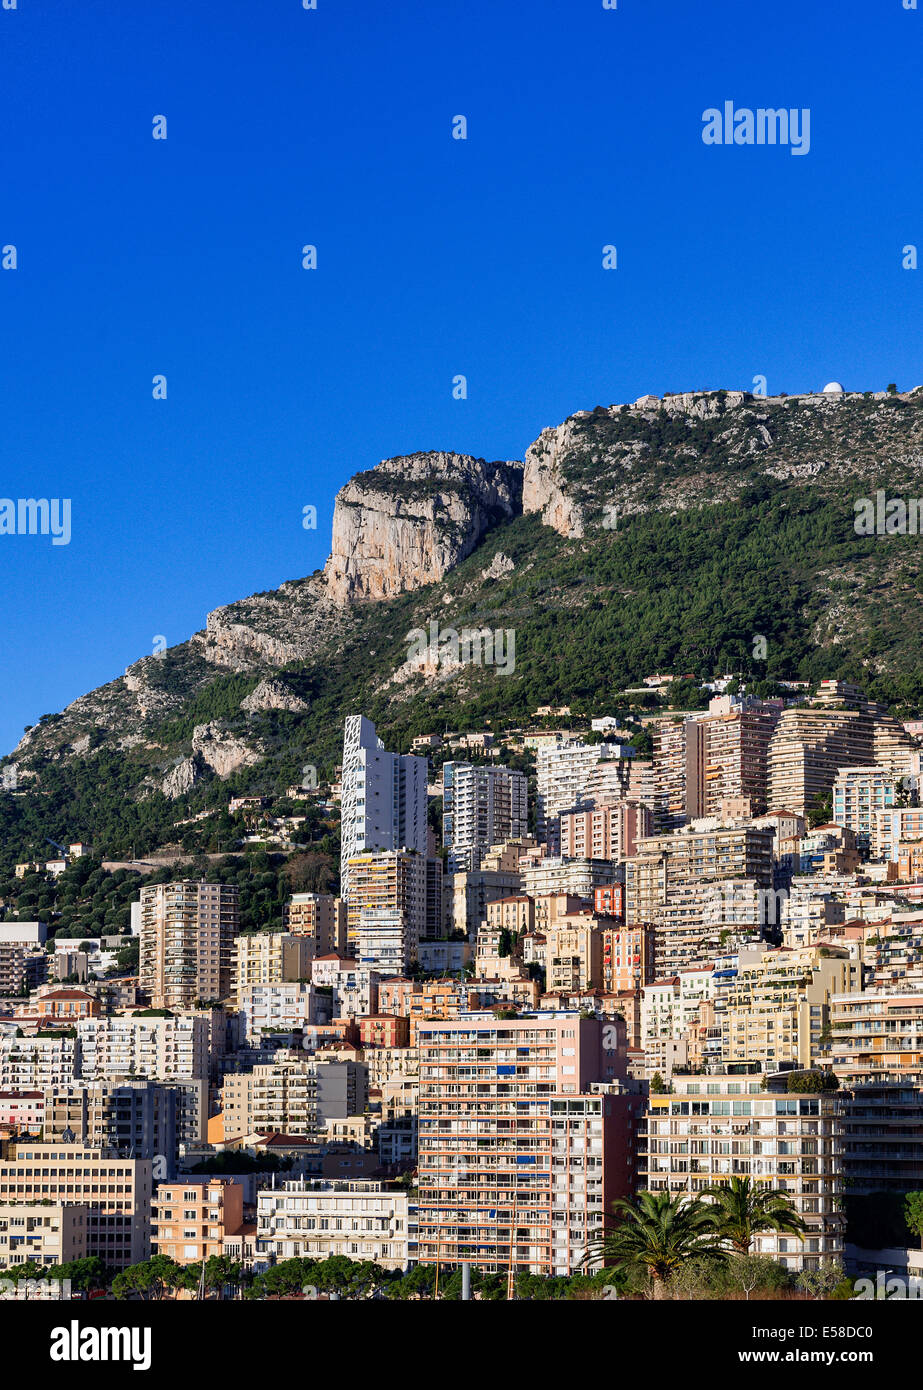 Dense cluster of city buildings, Fontvieille, Monaco - Stock Image